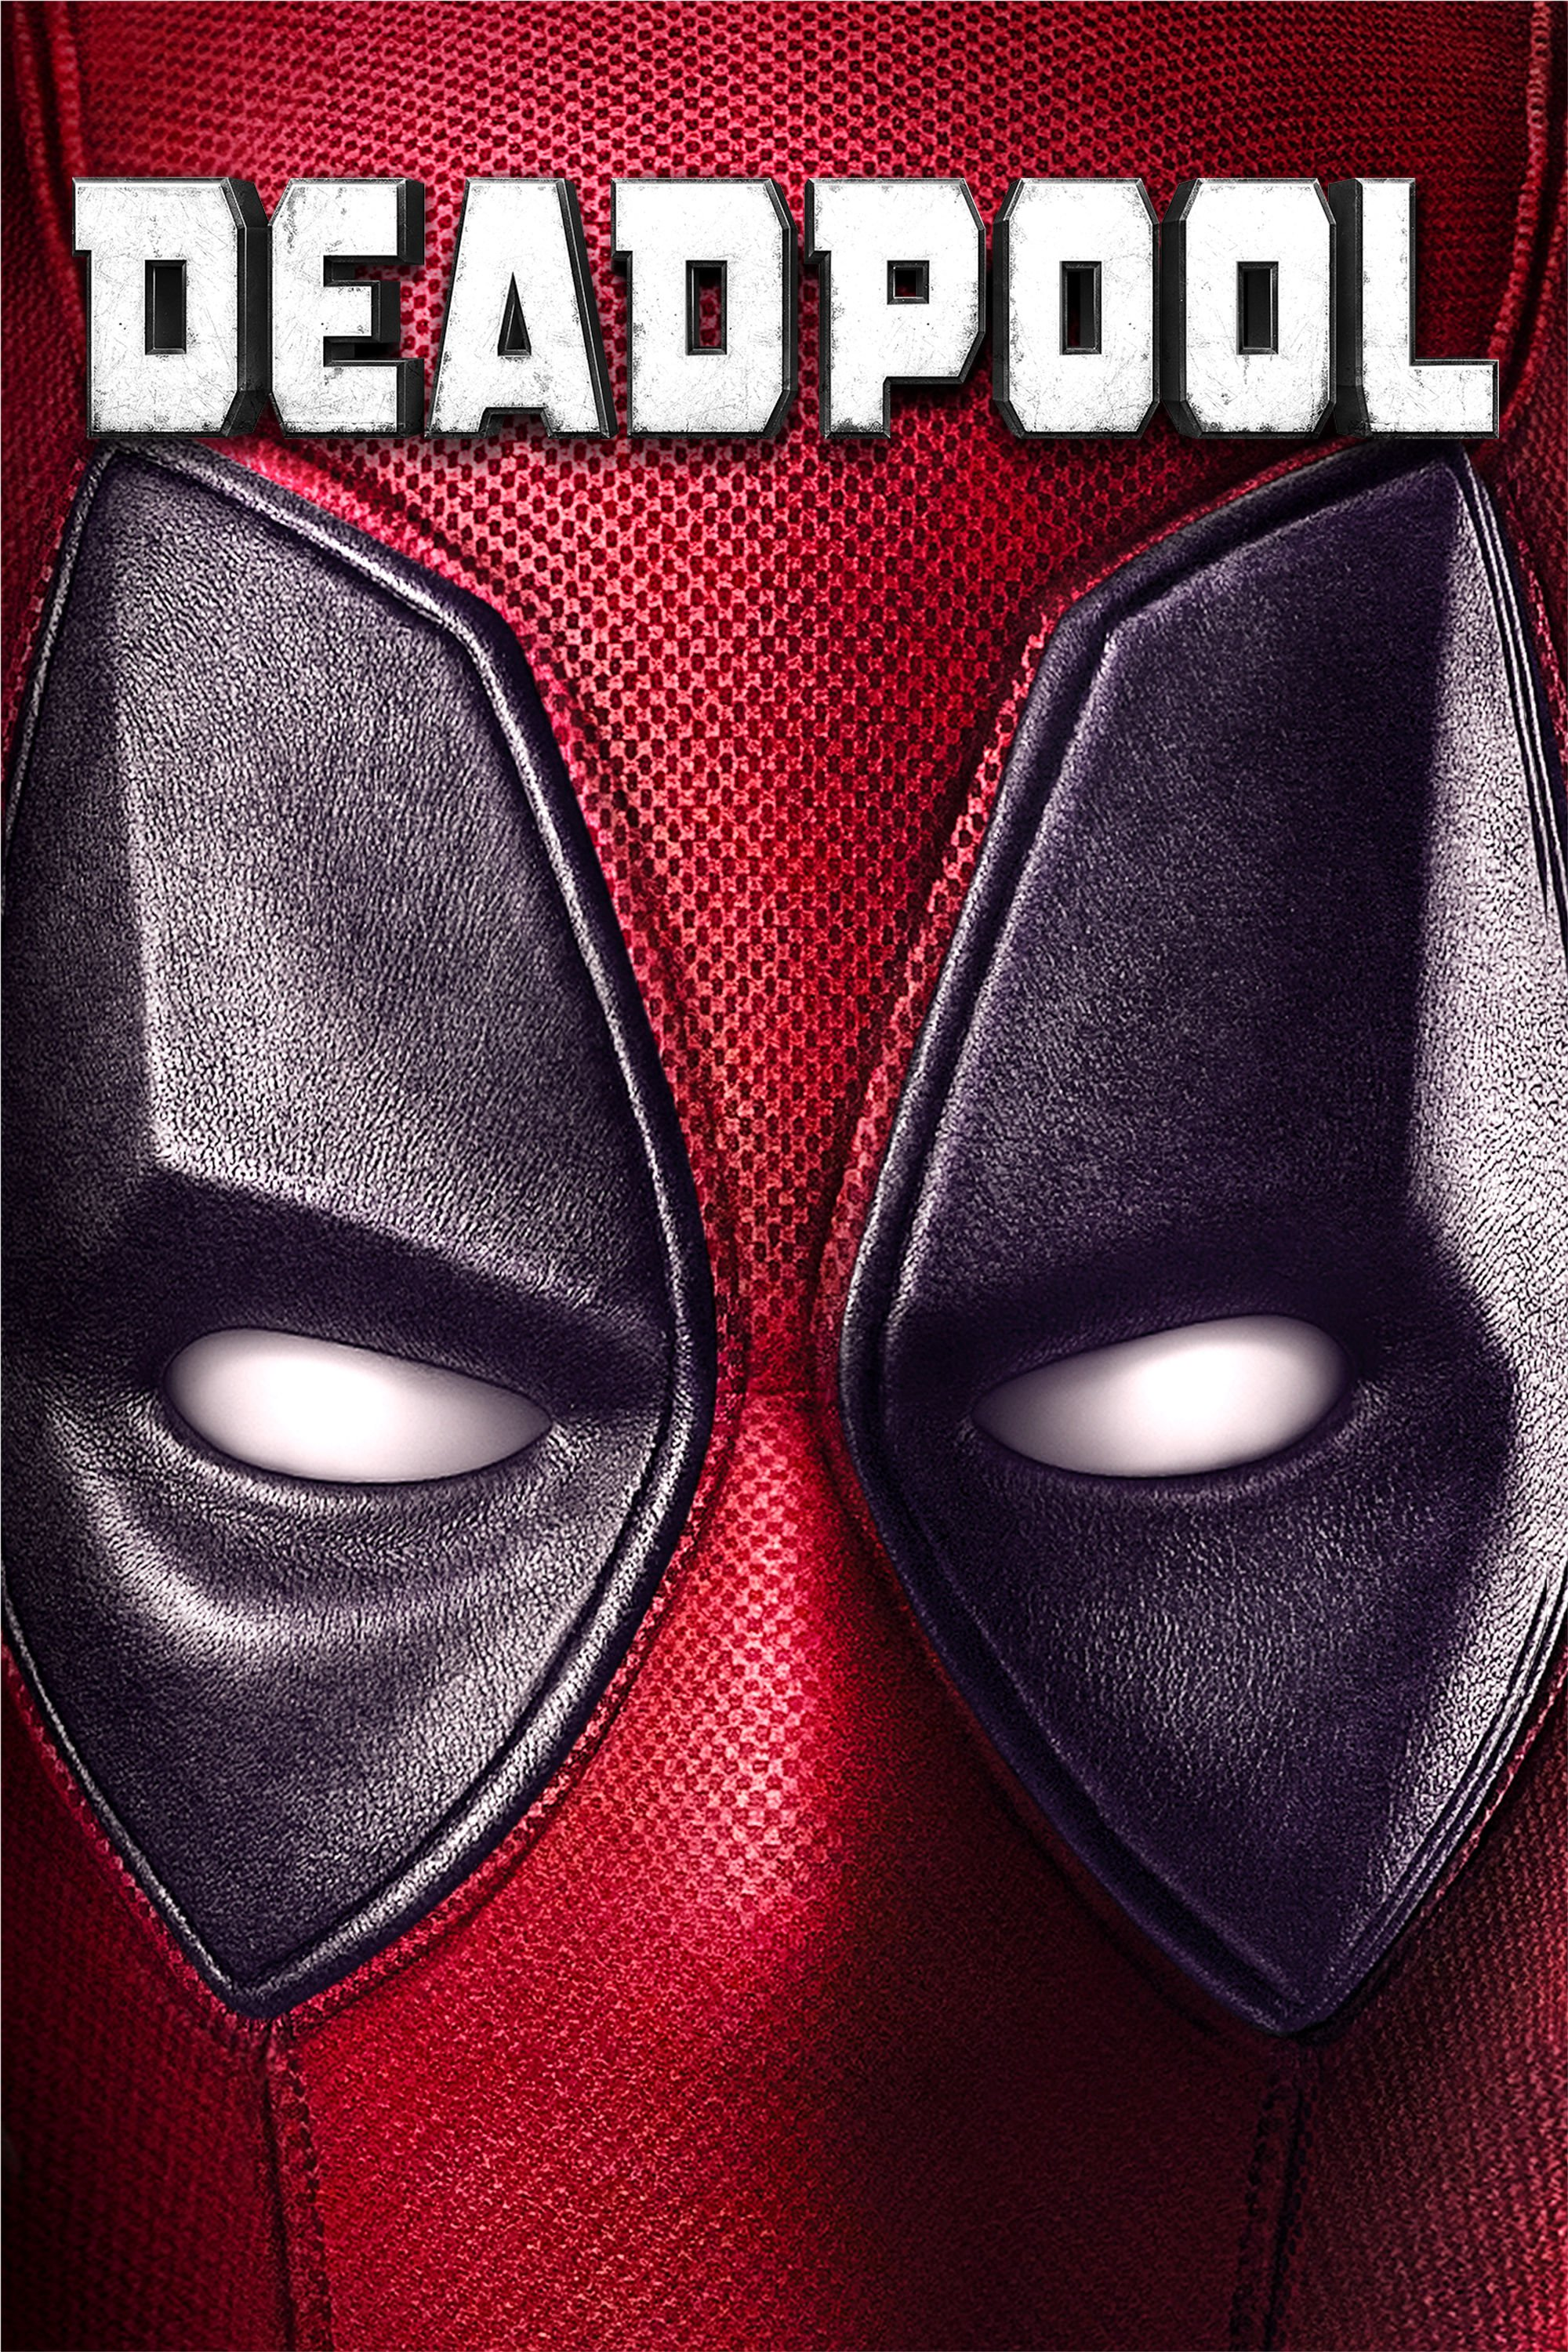 deadpool-filming-locations-poster